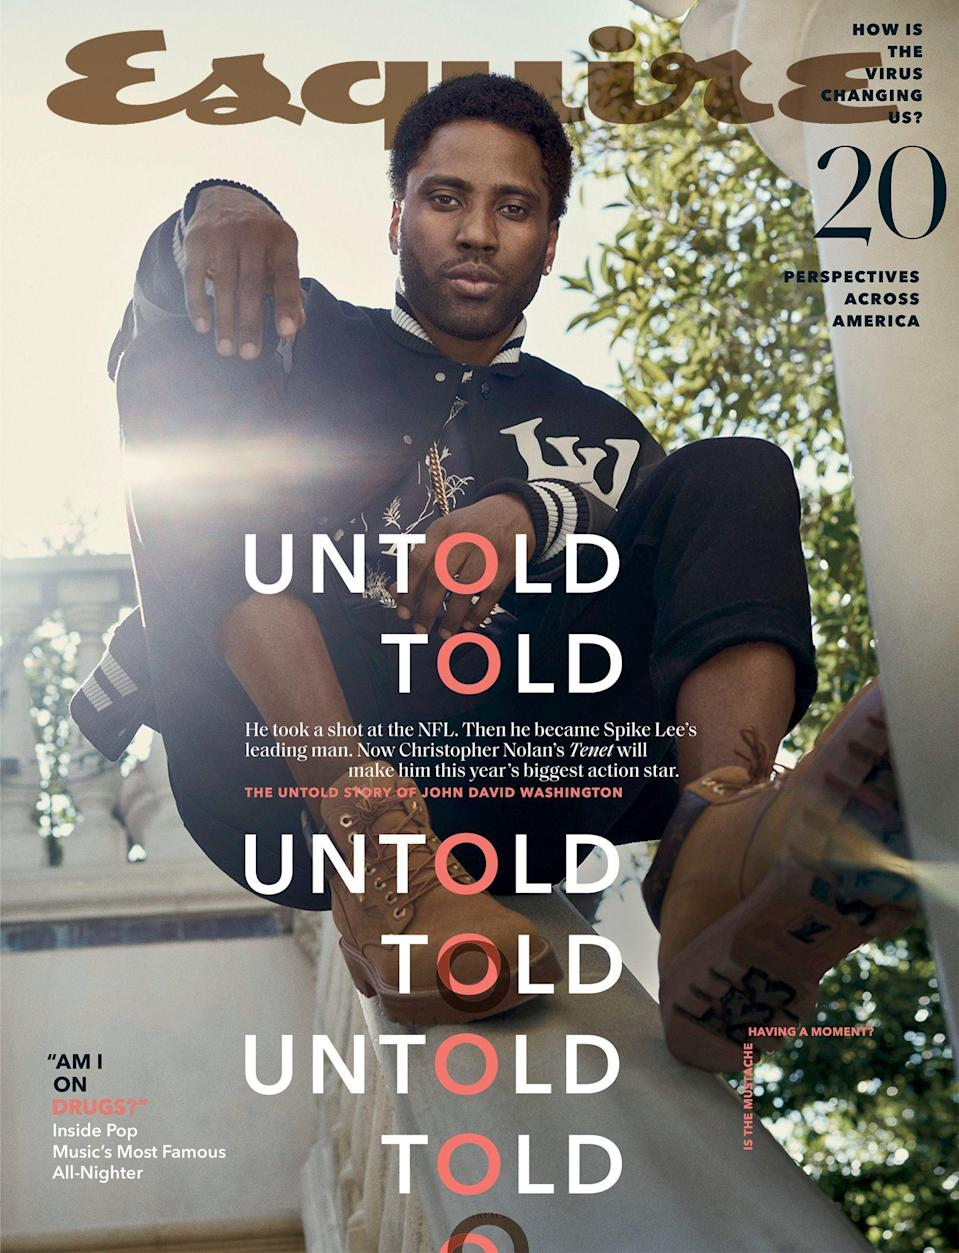 """<p><strong>Esquire</strong></p><p>hearstmags.com</p><p><a href=""""https://subscribe.hearstmags.com/subscribe/splits/esquire/esq_sub_nav_link"""" rel=""""nofollow noopener"""" target=""""_blank"""" data-ylk=""""slk:One Year for Just $15"""" class=""""link rapid-noclick-resp"""">One Year for Just $15</a></p>"""